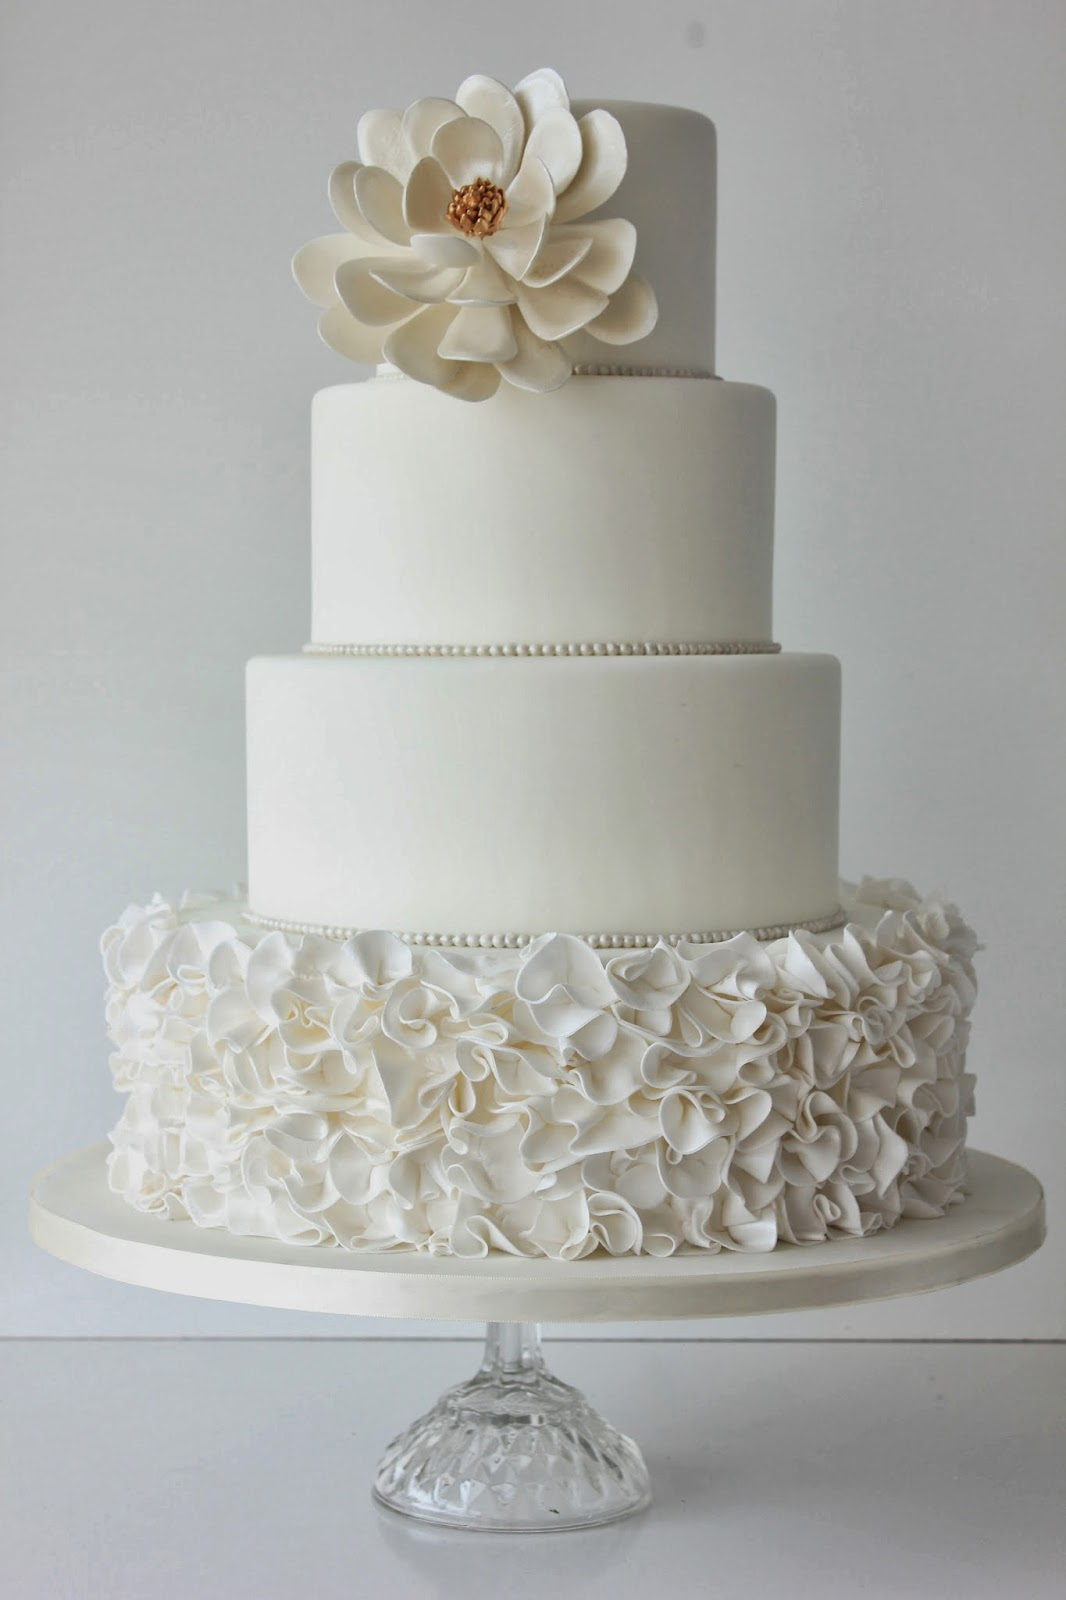 J\'Adore Cakes Co.: 2014 Wedding Cake Trends!